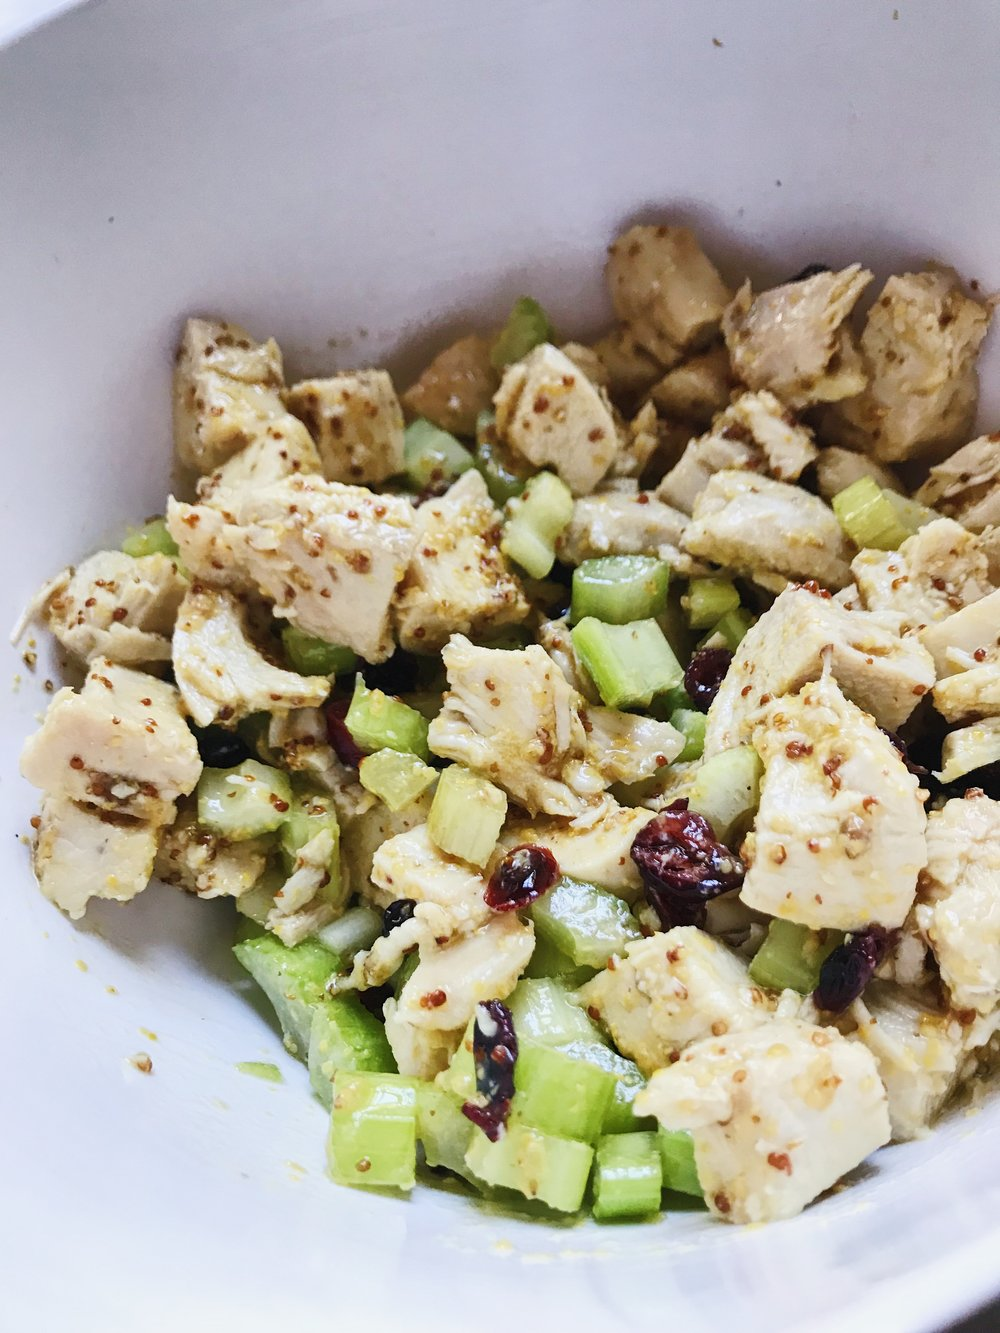 03_Chicken Salad Close-up.JPG